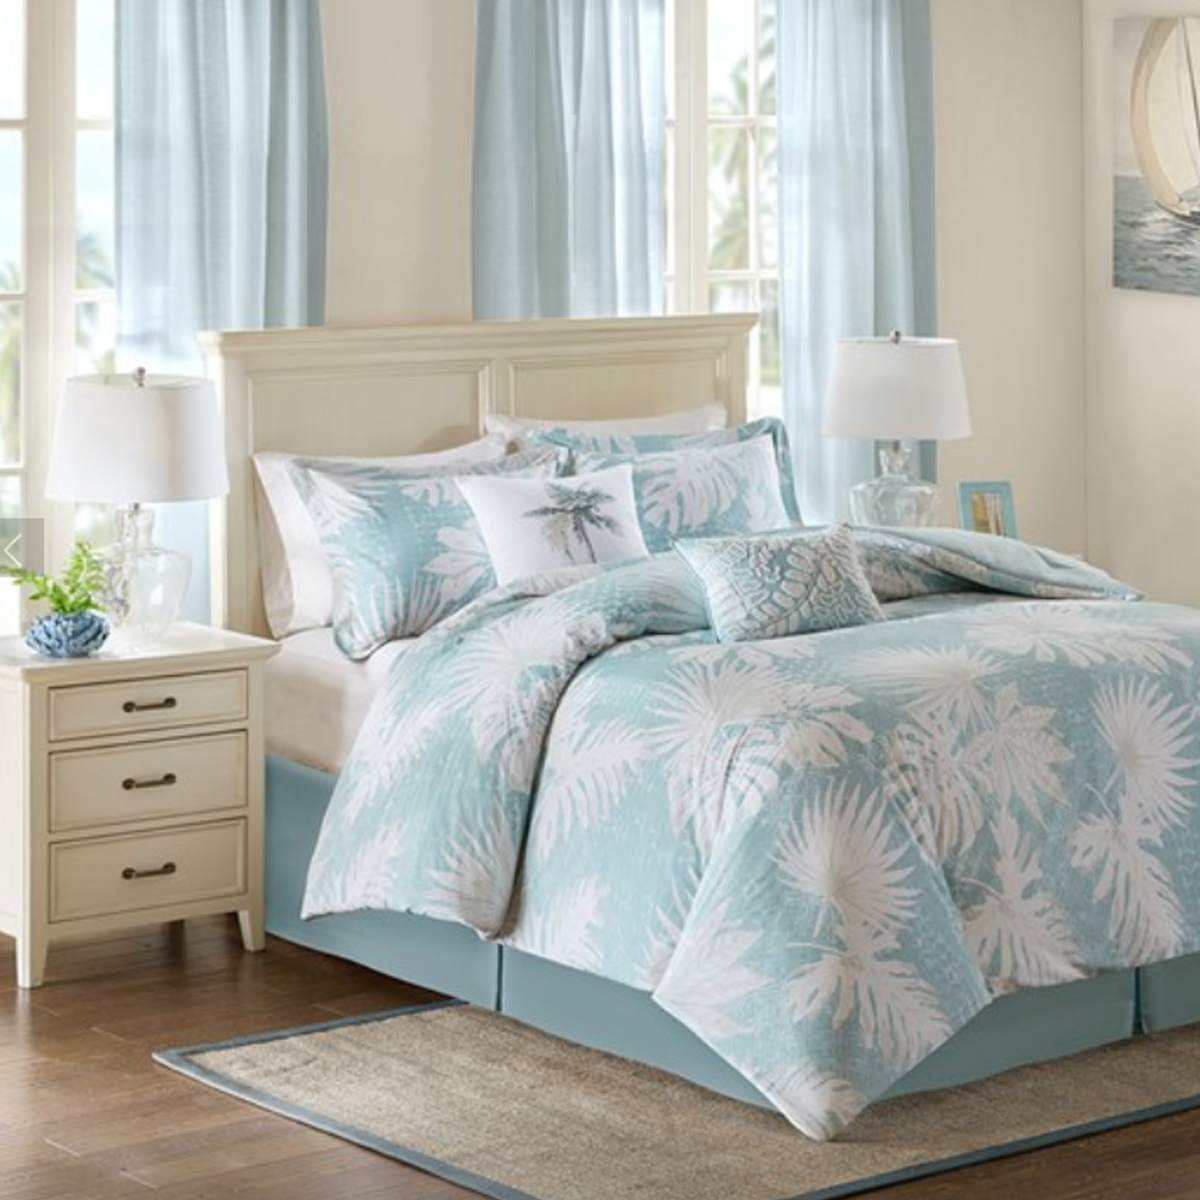 Picture of PALM GROVE 6 PIECE COMFORTER SET - KING